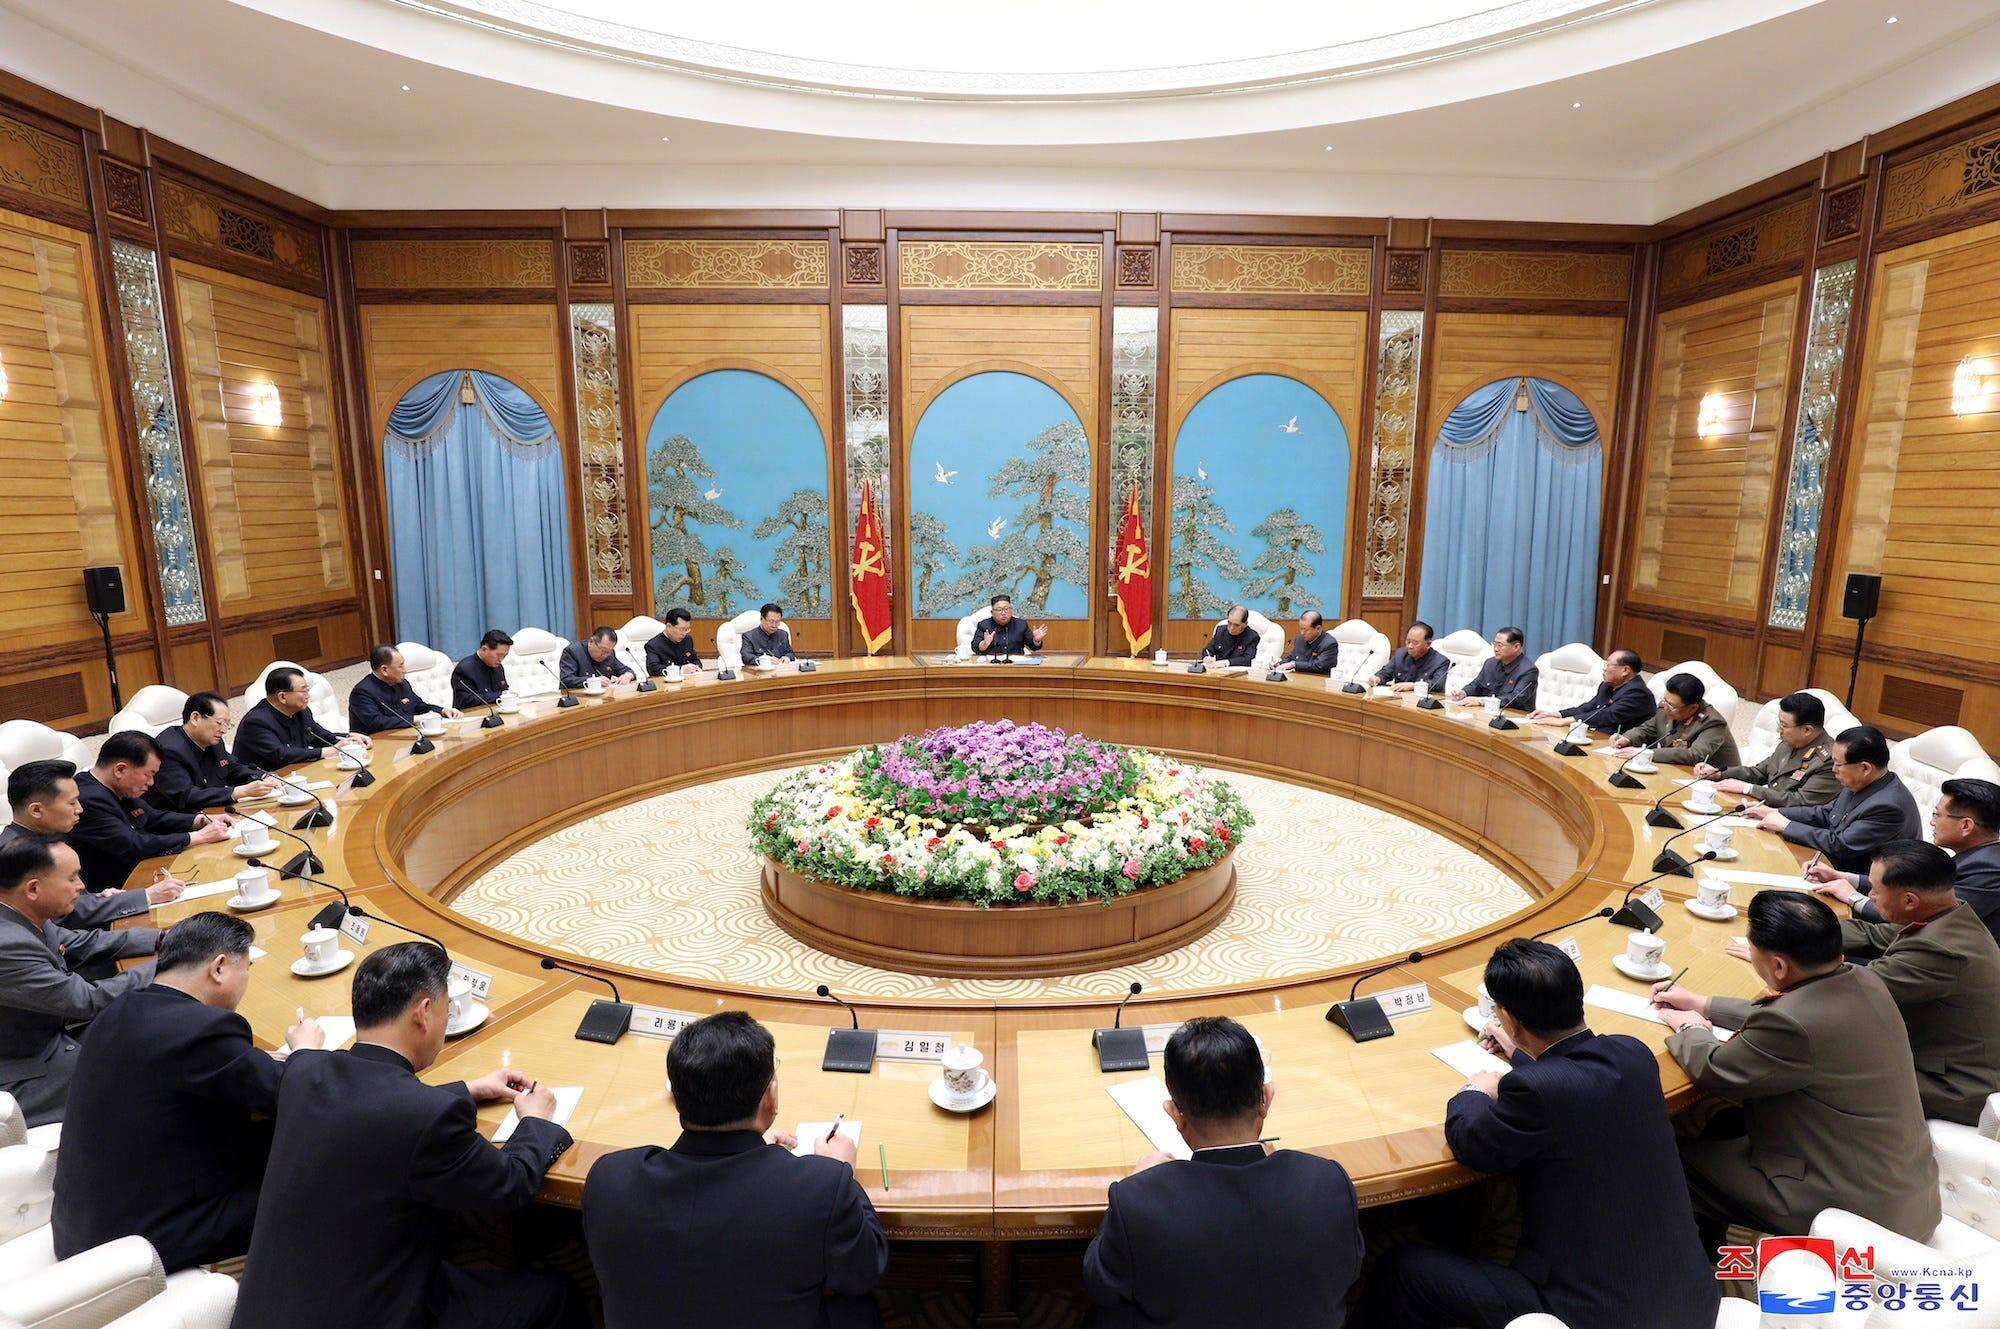 Kim Jong-Un leads a meeting of the Politburo of the Central Committee of the Workers Party of Korea, April 11, 2020, the last time Kim was seen in public